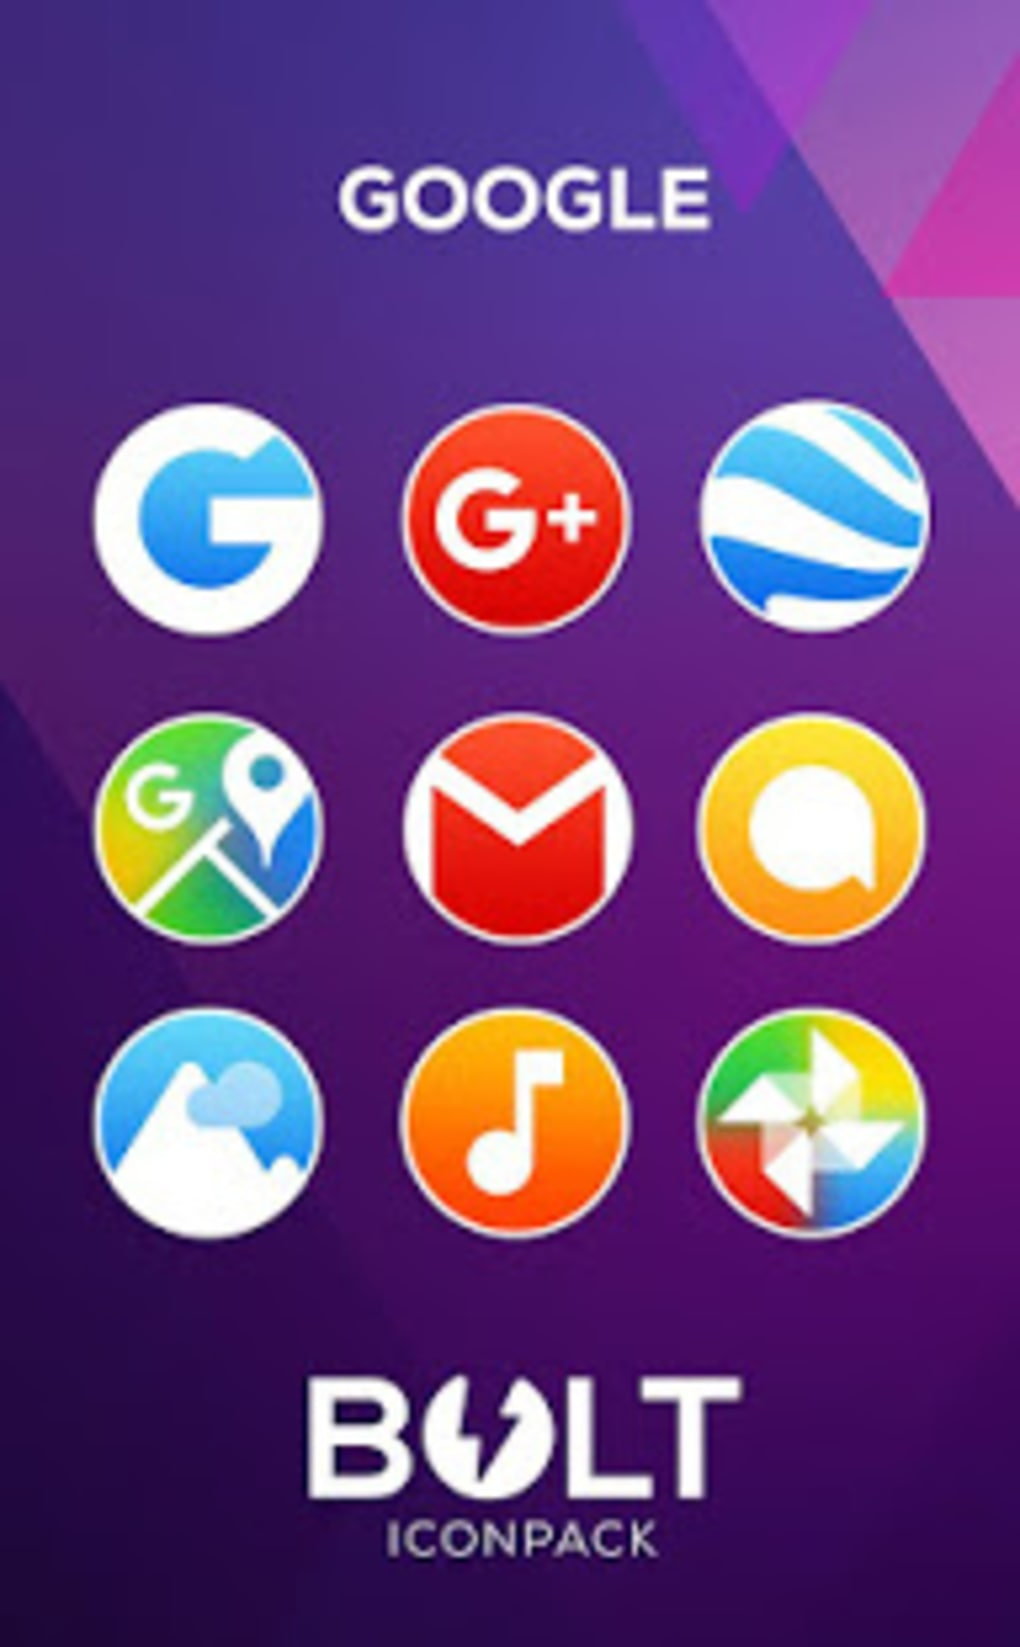 BOLT Icon Pack